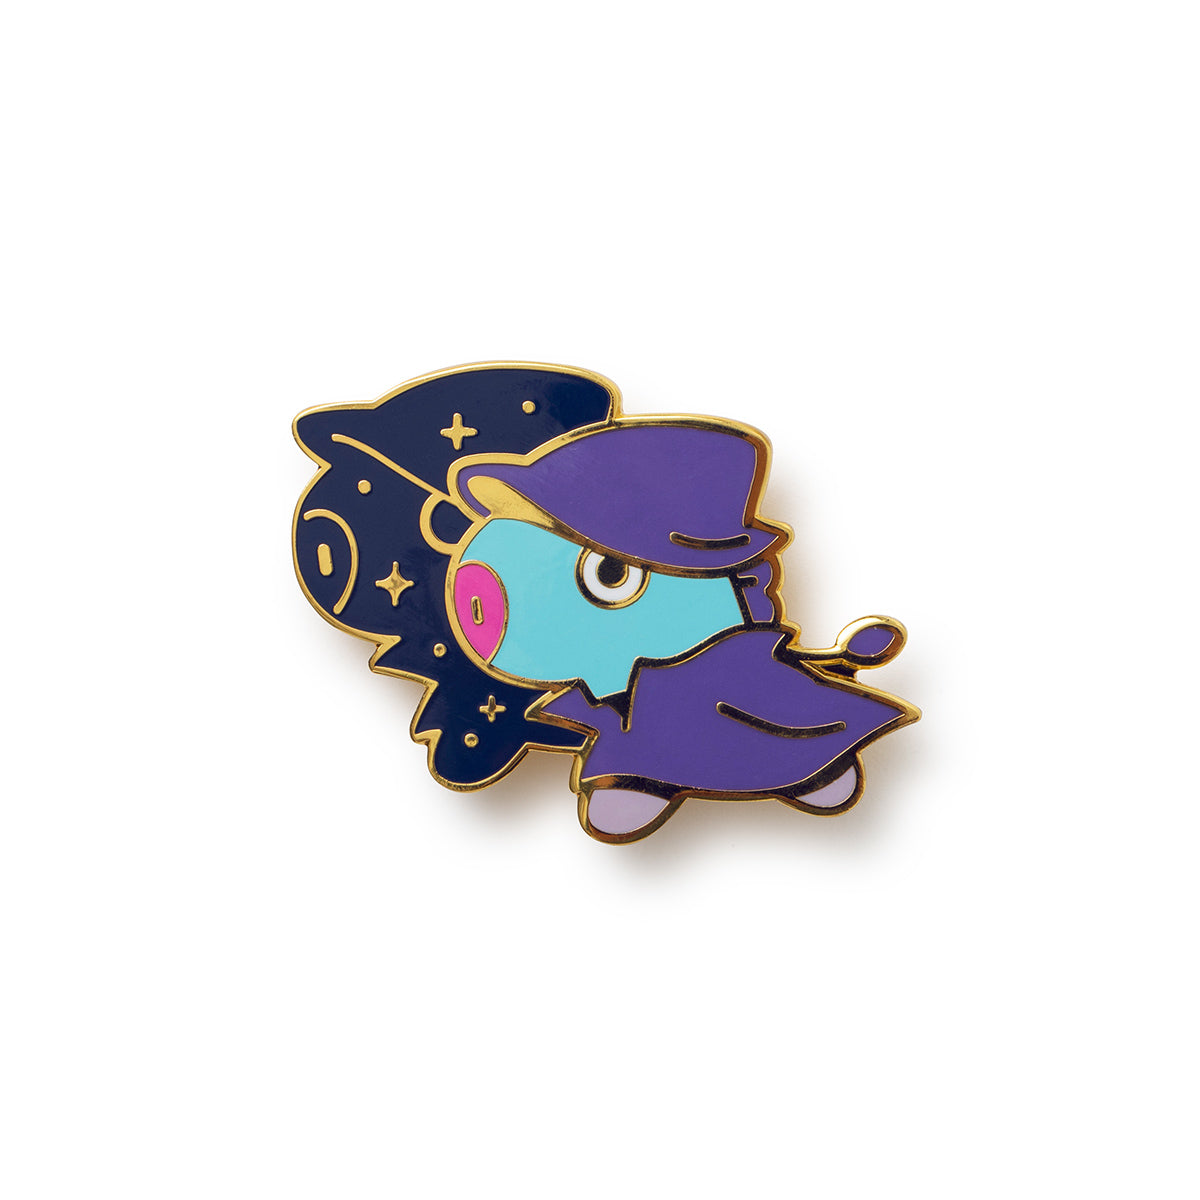 BT21 MANG Universtar Metal Badge 1